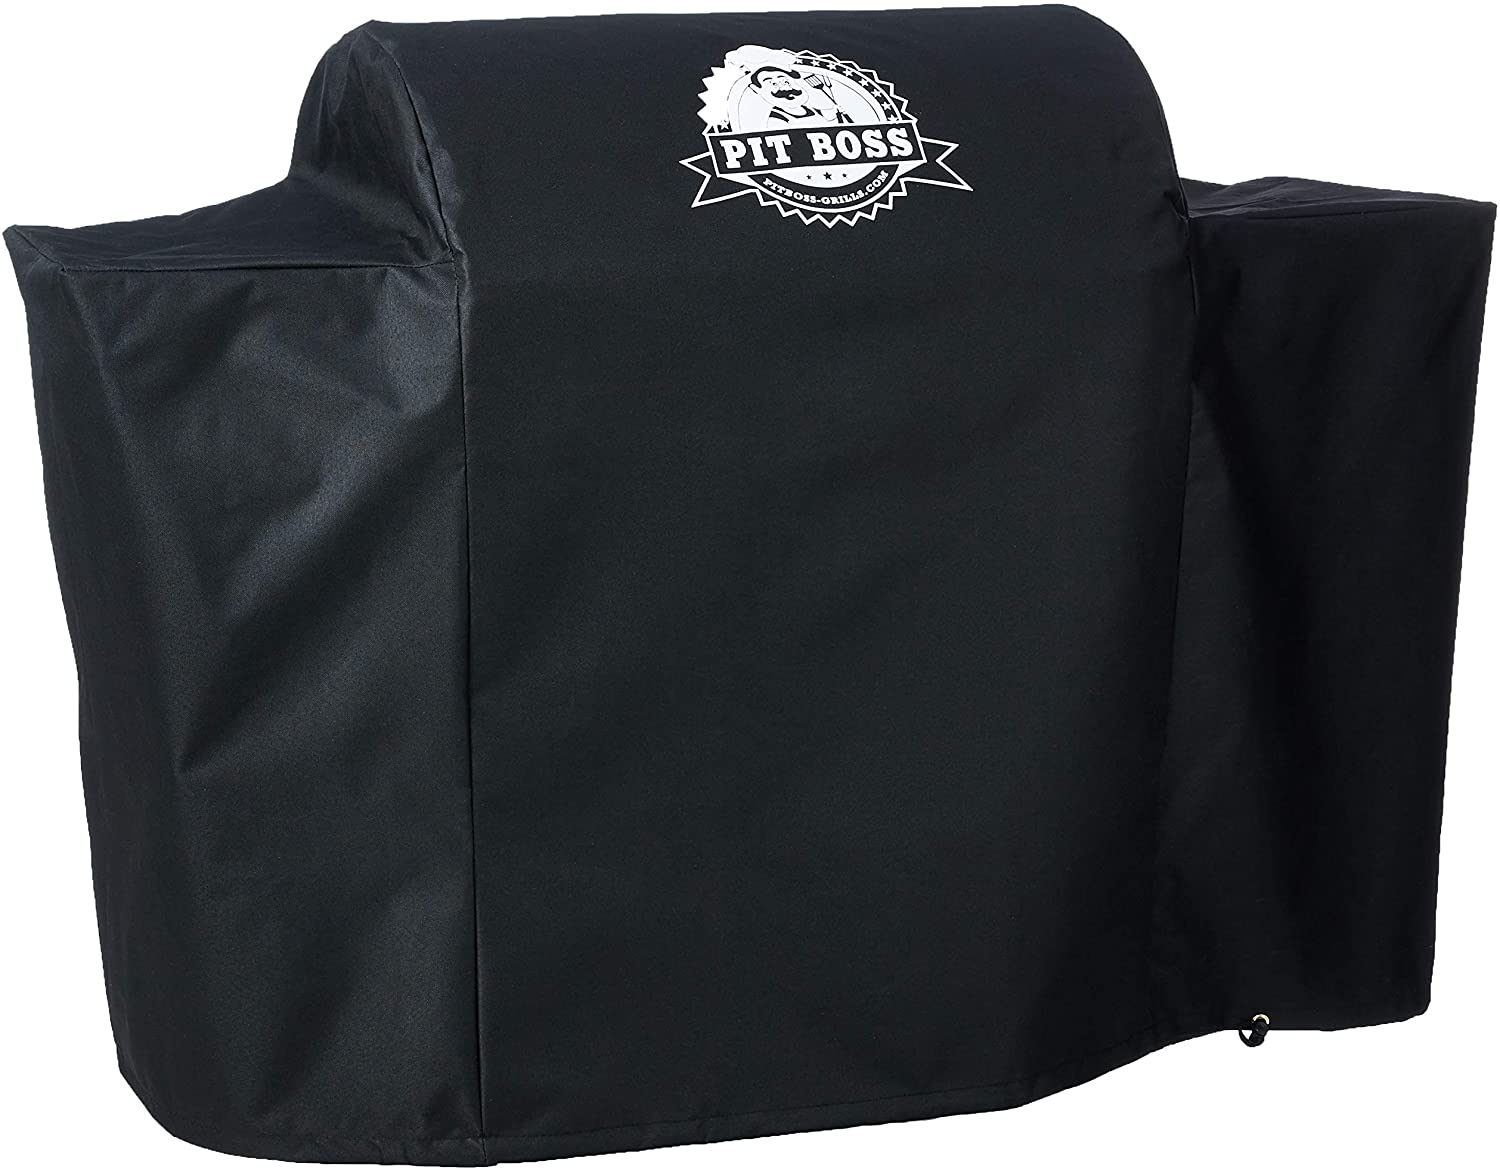 PIT BOSS 73440 Free shipping anywhere in the nation Deluxe Black Wood Pellet Ranking TOP20 Grills